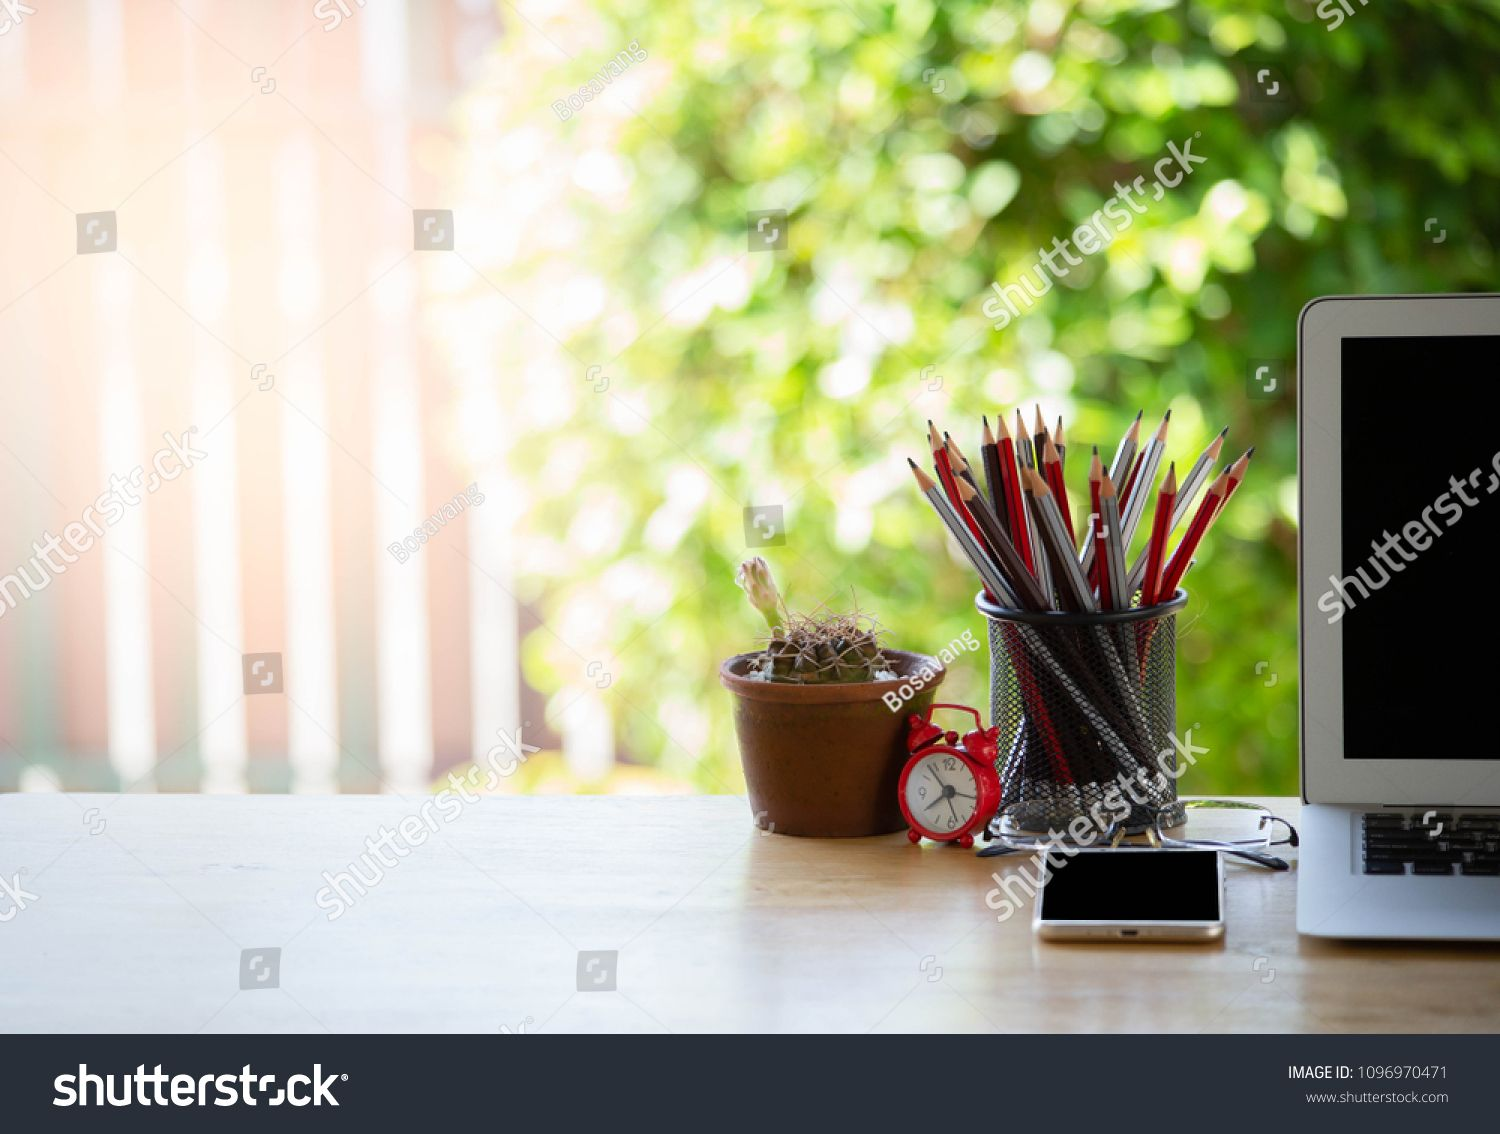 Desk work at home,Laptop with phone and stationary on wooden table blurred garden background,selective focus. #Ad , #Sponsored, #Laptop#phone#stationary#Desk